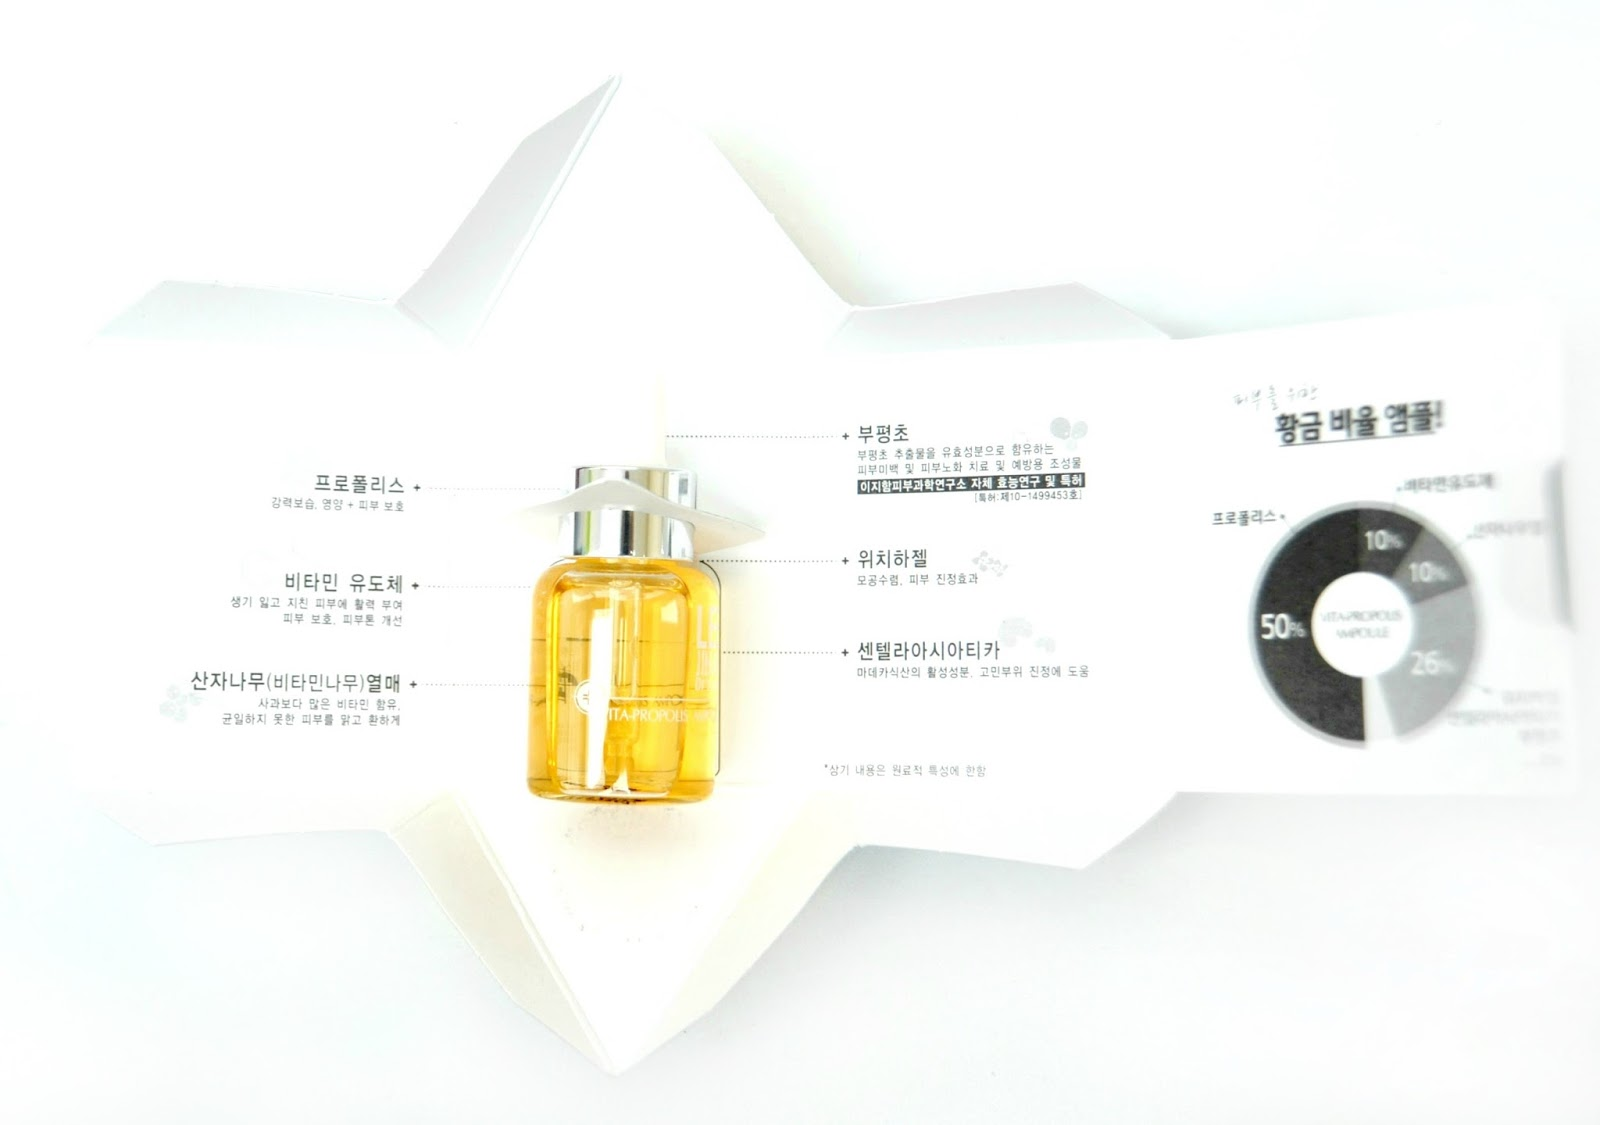 Lee Ji ham Vita Propolis Ampoule Review Korean Beauty